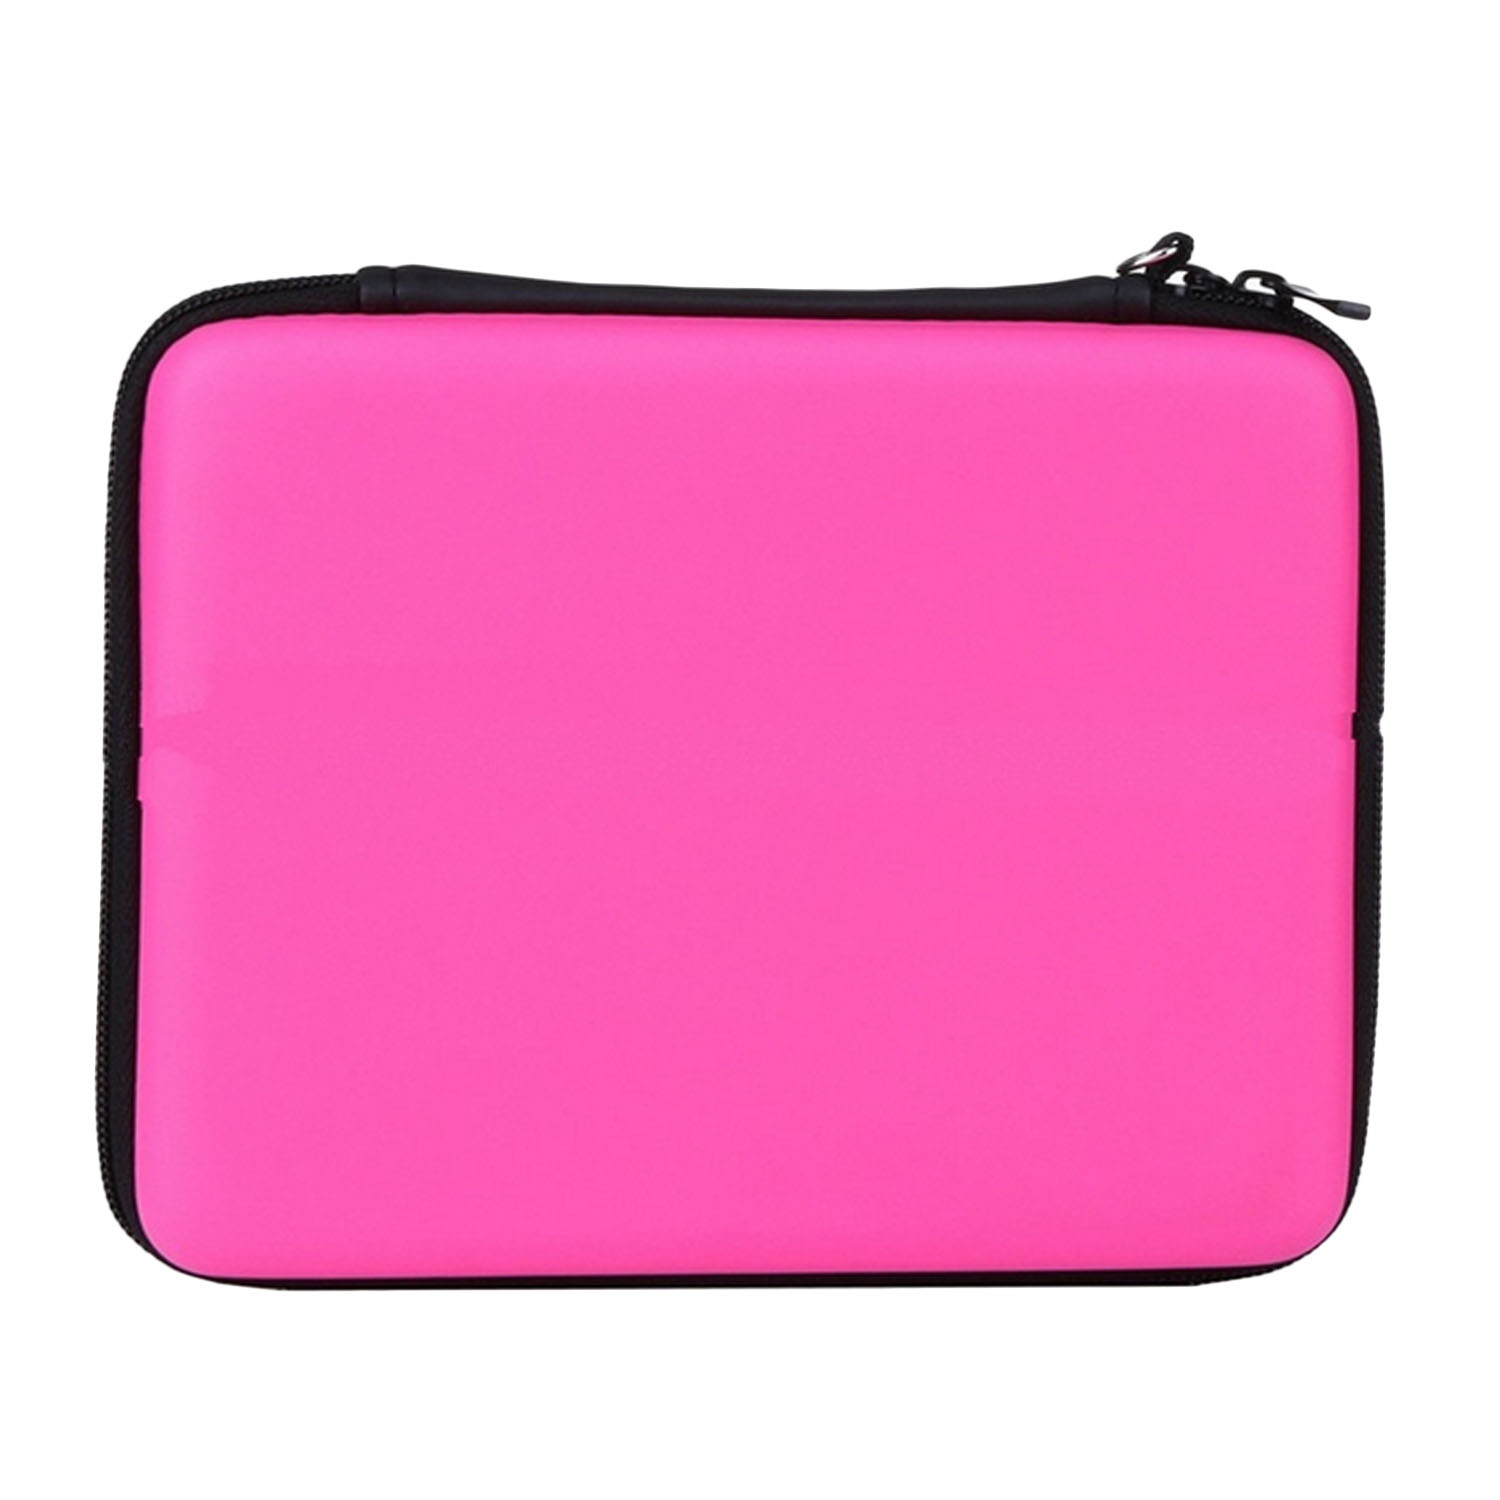 Portable Hard Shell Anti-shock Pelindung Penyimpanan Travel Hand Bag Case Holder dengan Carrying Strap untuk Nintendo 2DS Konsol Pink-Intl